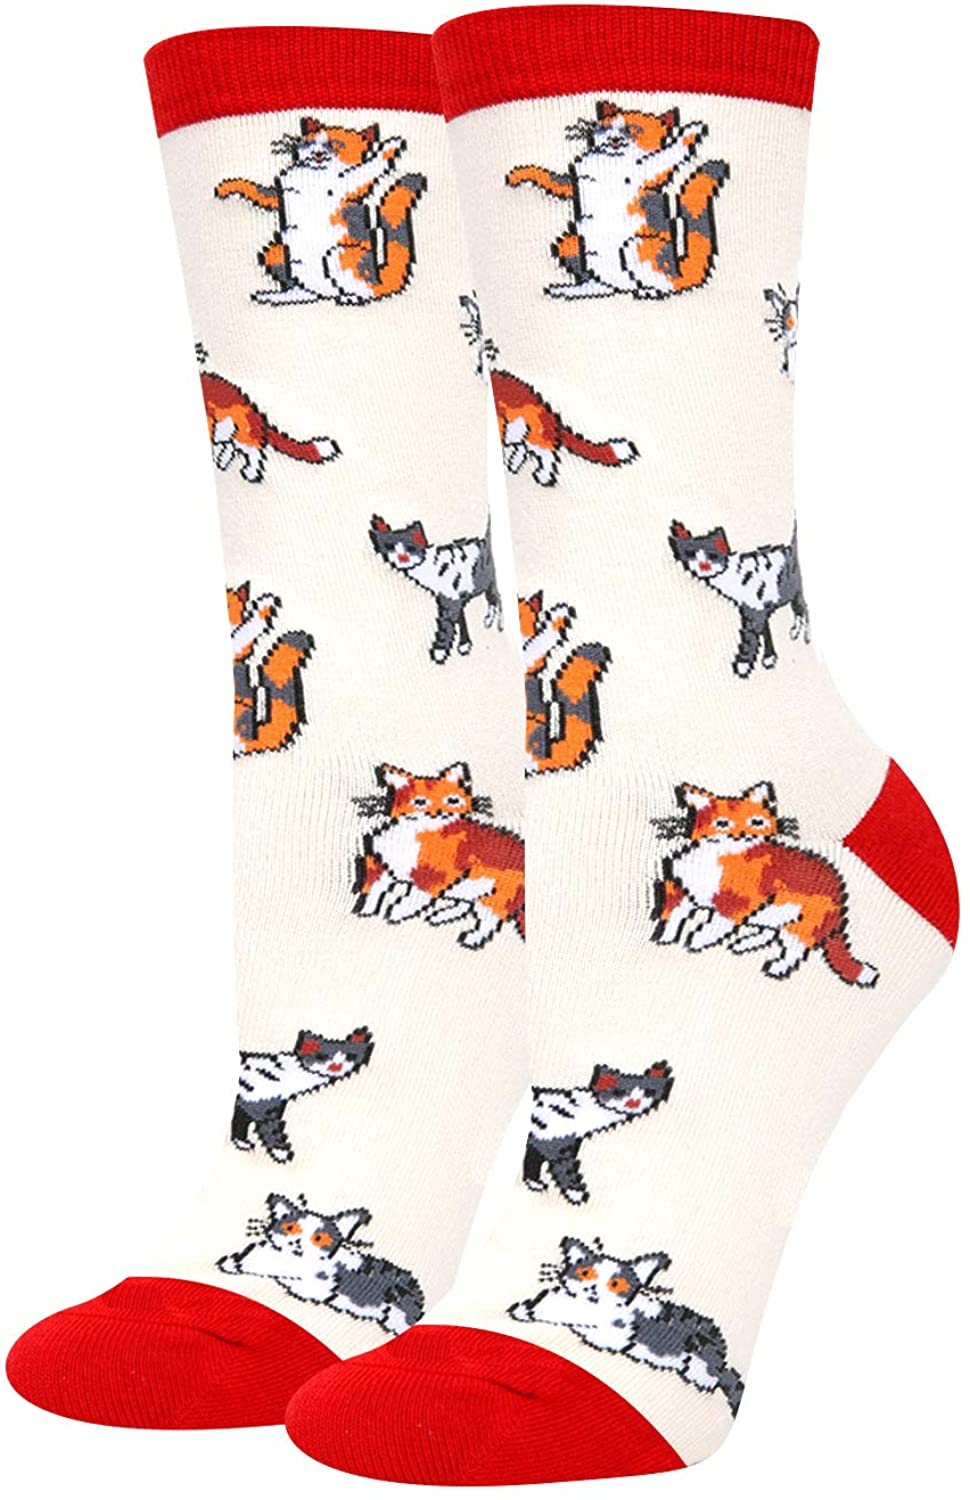 HAPPYPOP Cute Busy Bee Socks, Funny Novelty Honeycomb Bugs Chicken Unicorn Cat Gift for Women Girls